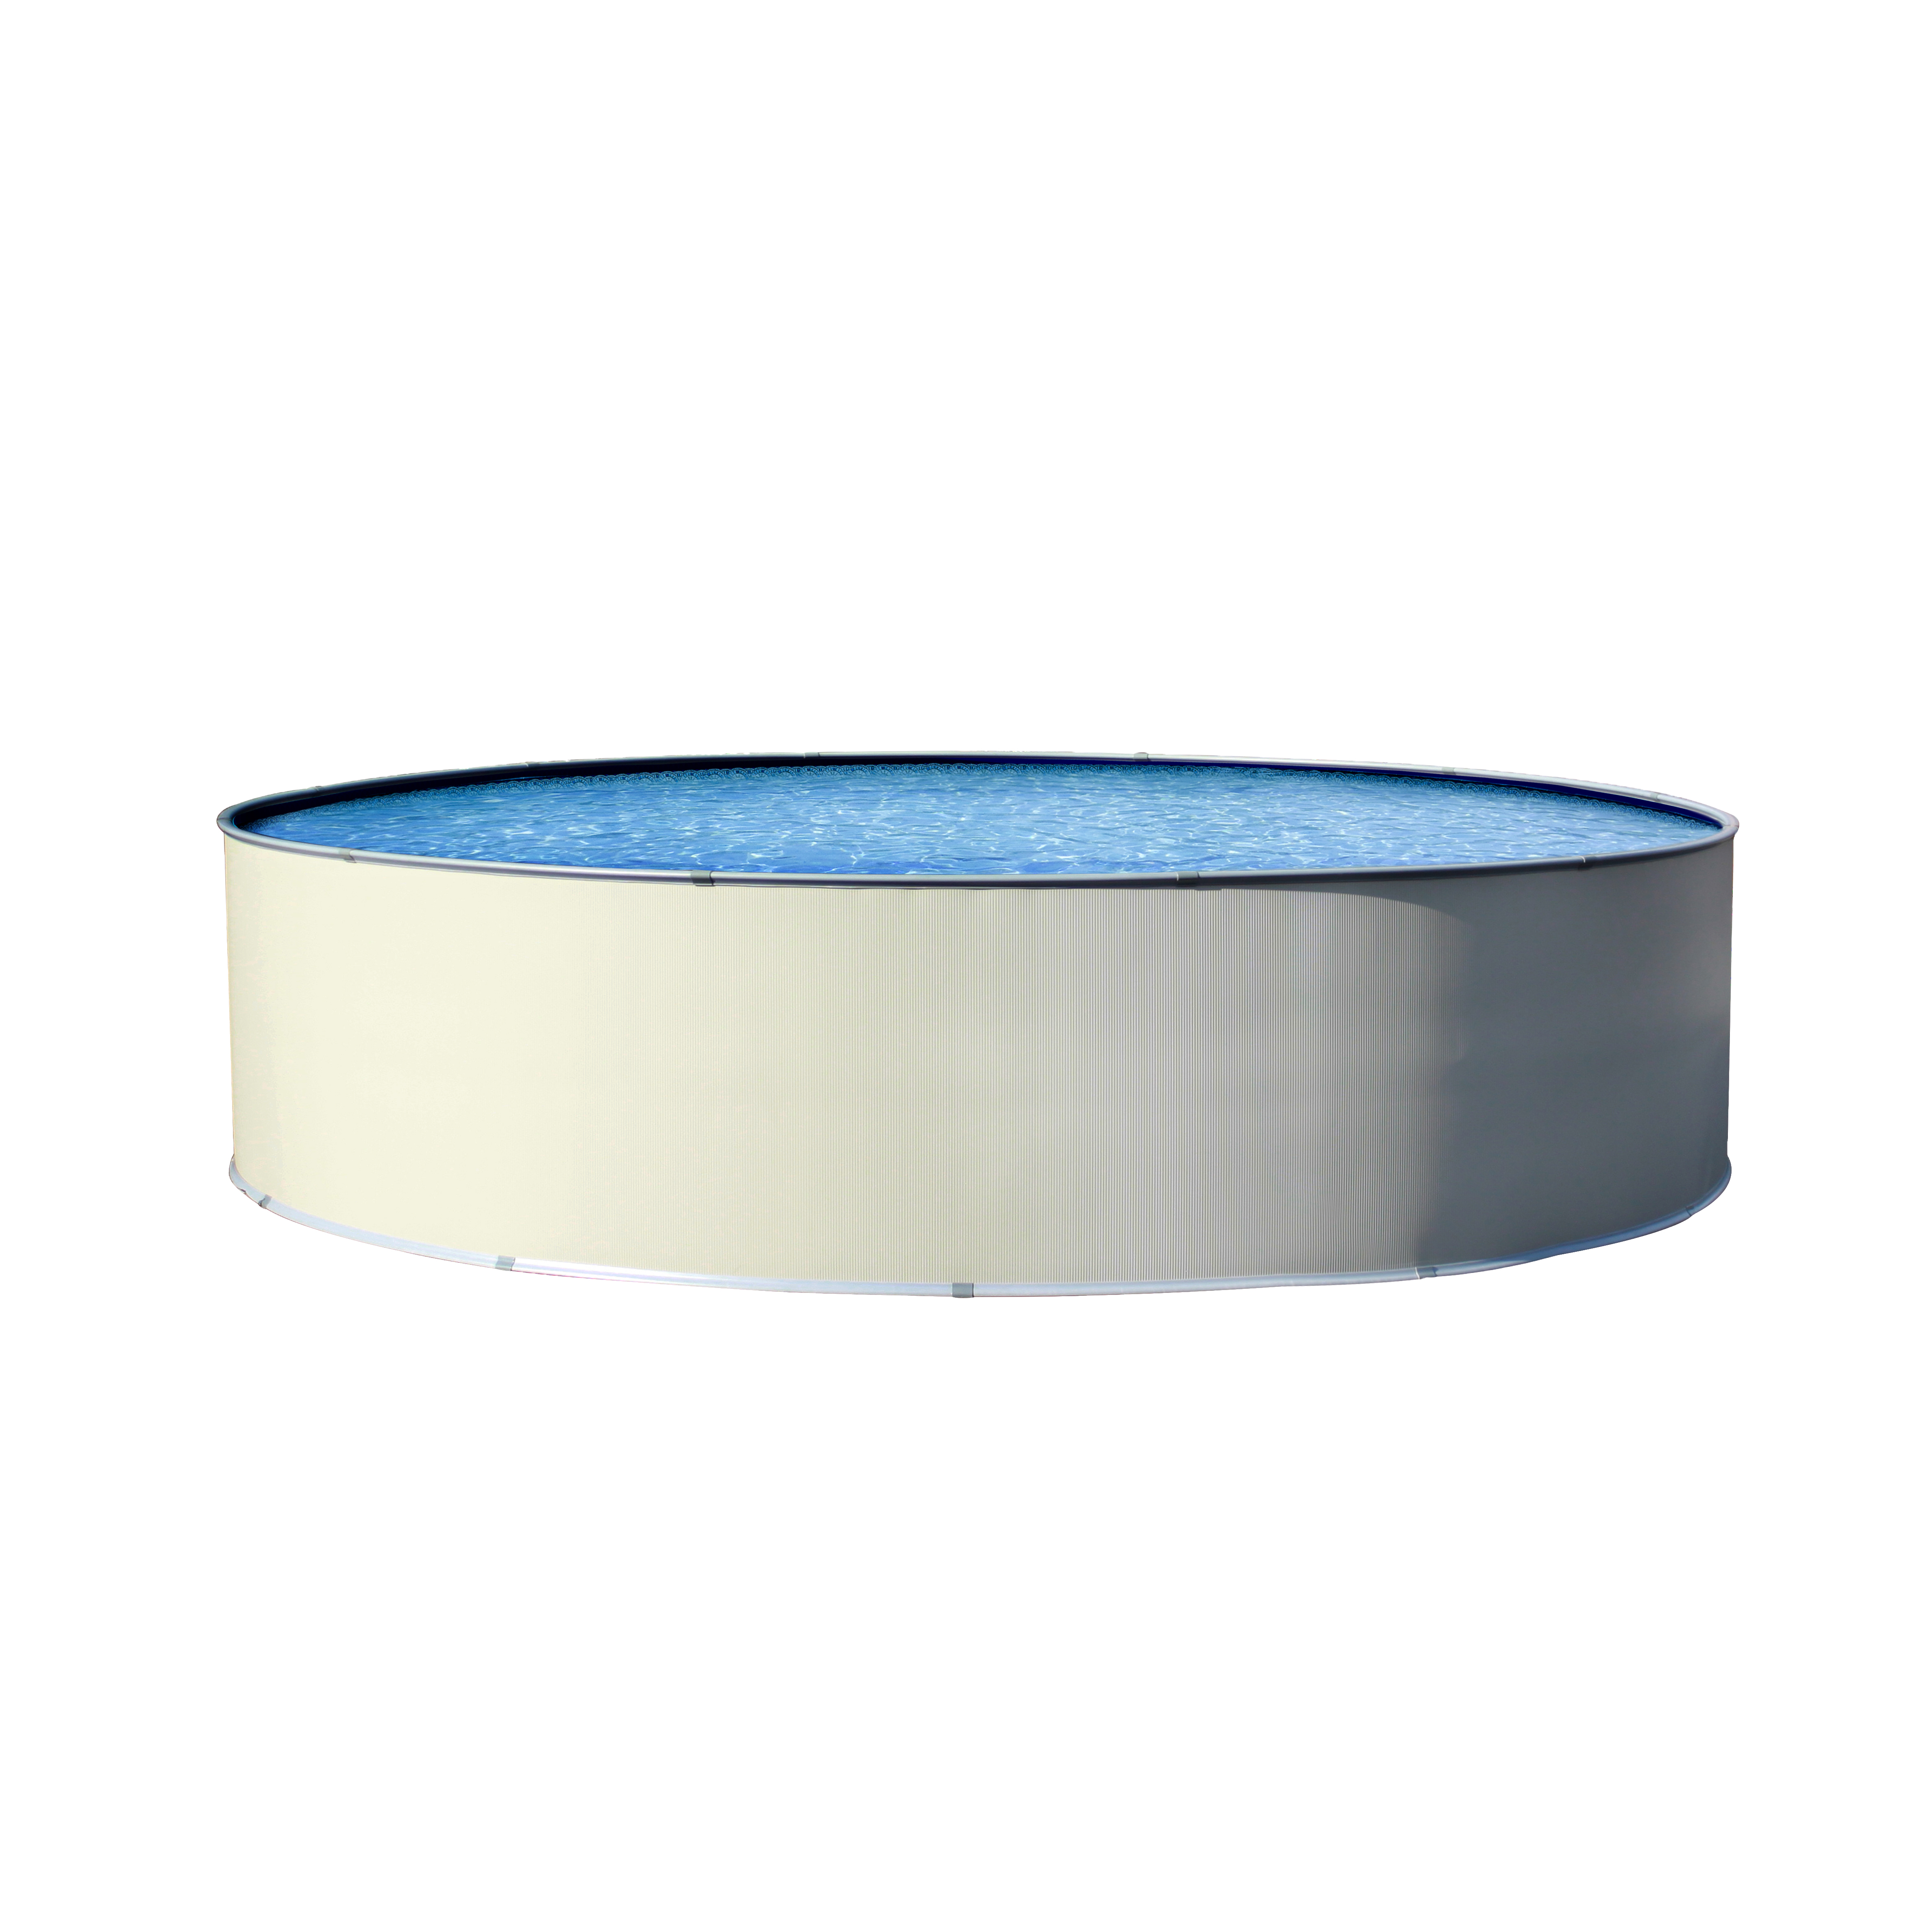 Simplicity 18 pied ronde piscine hors terre pool for Chauffe eau solaire pour piscine hors terre